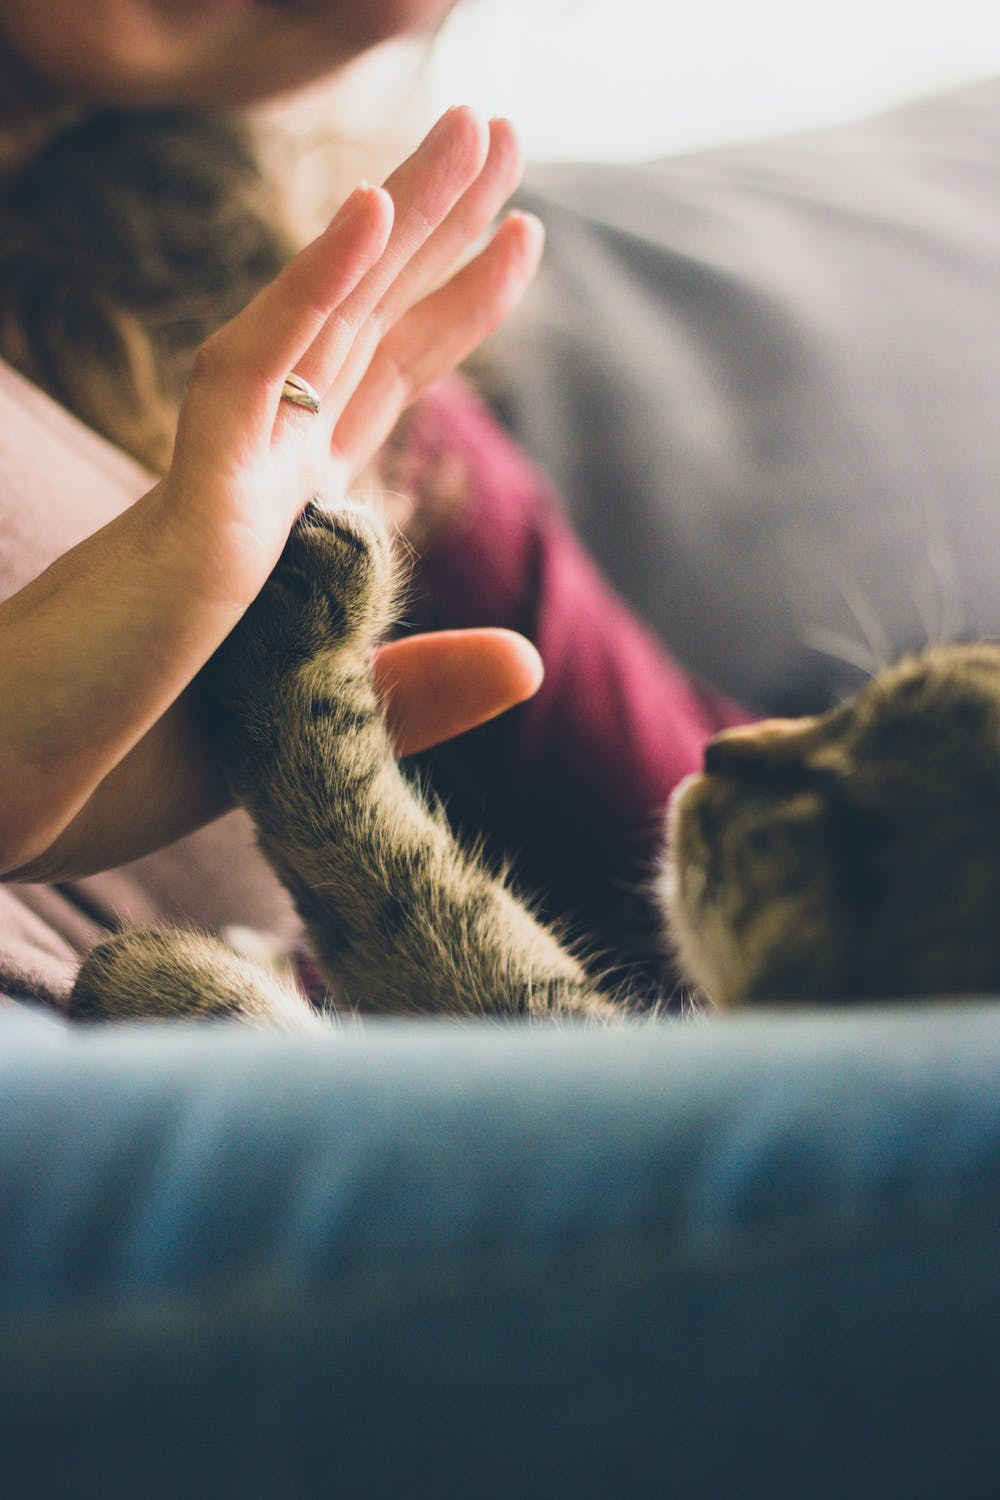 new kitten care kitten things things i need for a kitten brooklyn cat sitter guide for new cat owners best things for kittens taking care of a new kitten best way to raise a kitten things to buy before getting a kitten essentials for getting a kitten new kitten 101 bringing up a kitten caring for new cat